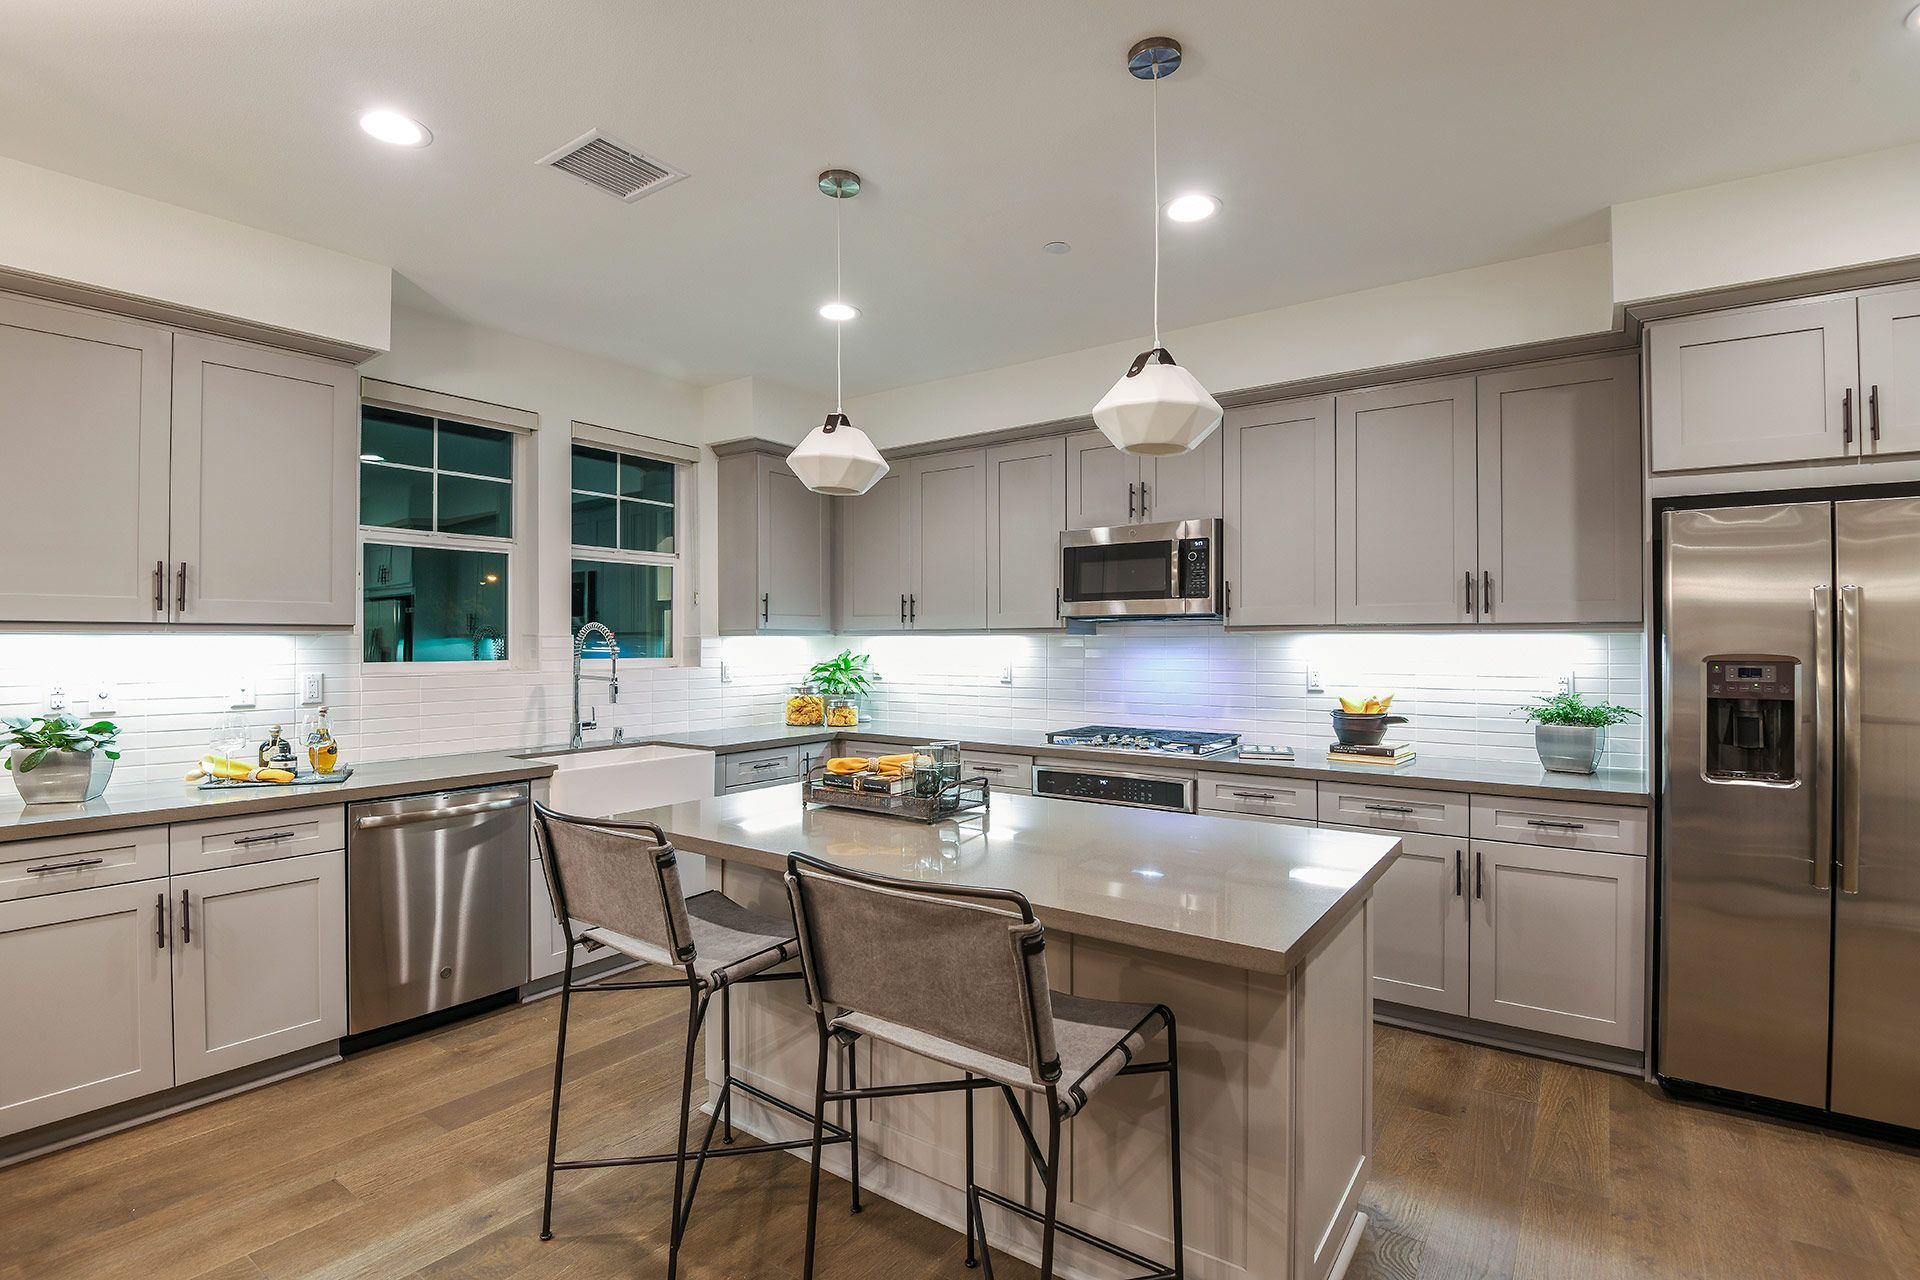 Kitchen-in-Chelsea Plan 3-at-Vintage at Old Town Tustin-in-Tustin